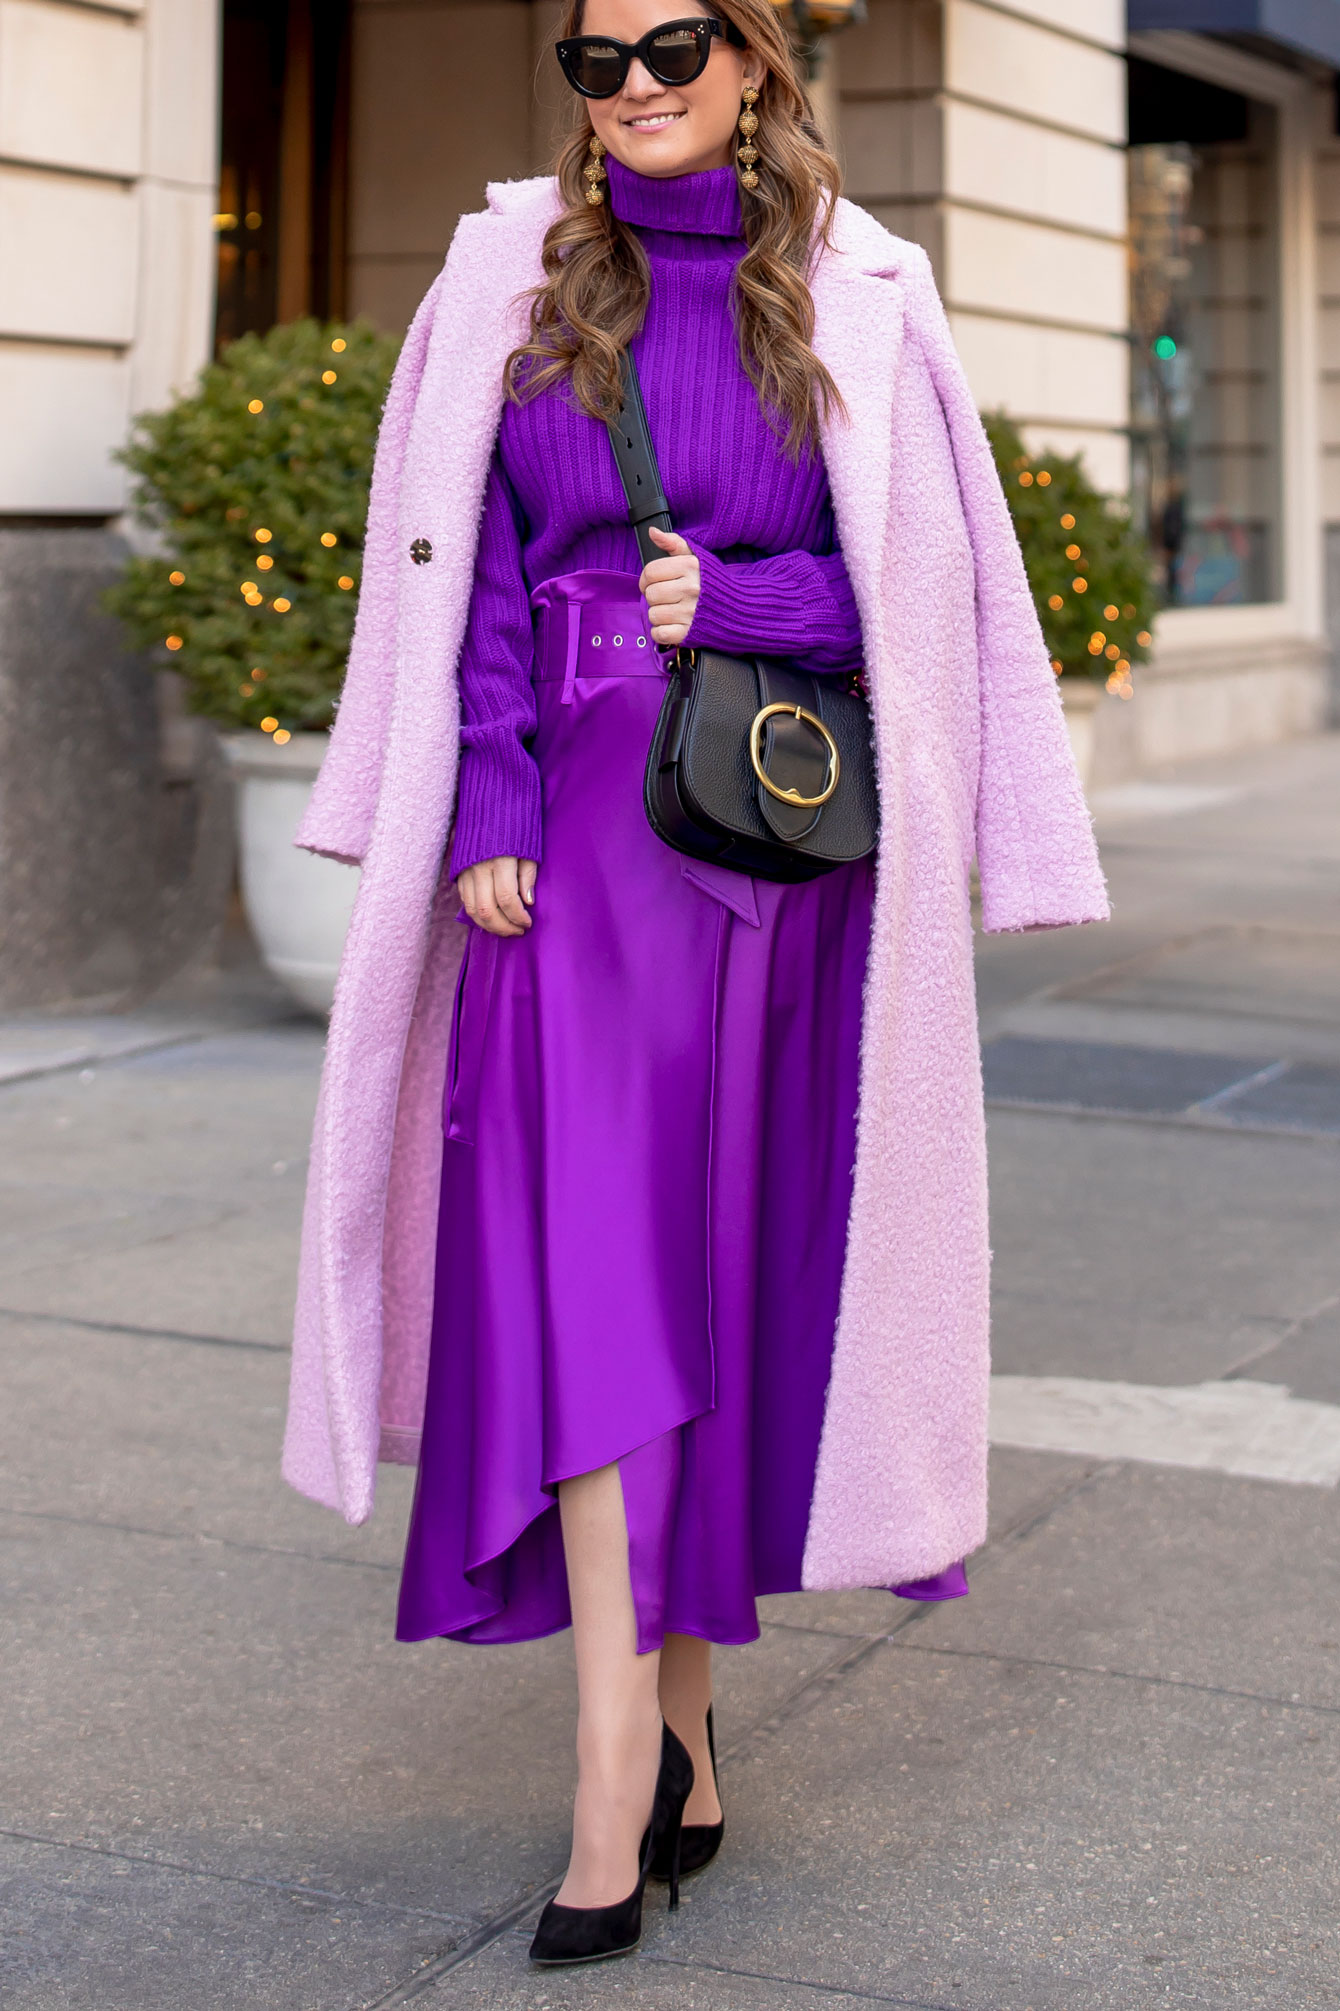 Ralph Lauren Purple Satin Skirt